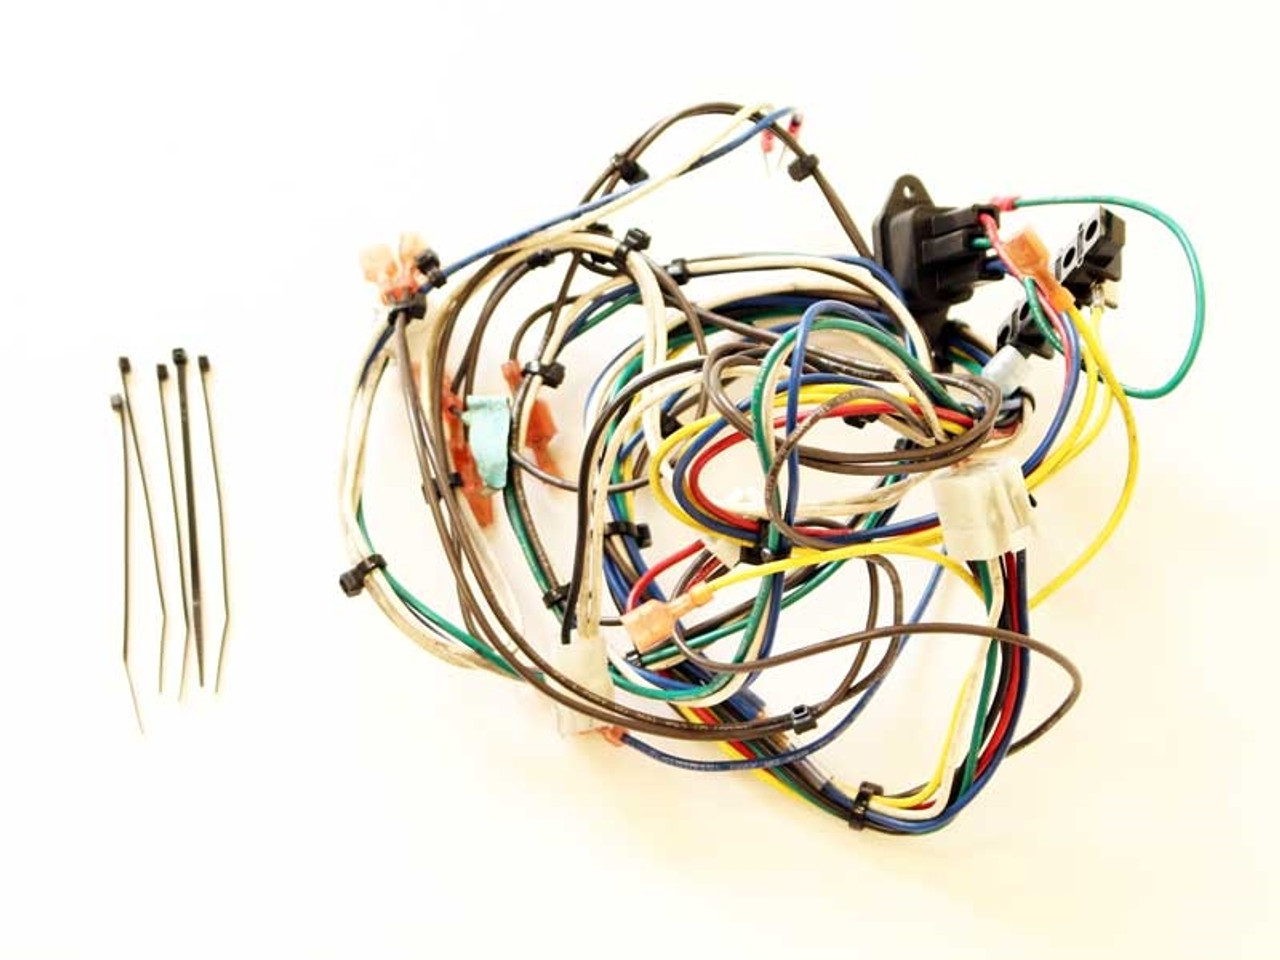 whitfield advantage ii t classic wiring harness 12158811 Pellet Stove Bracket wiring harness for whitfield advantage ii t classic pellet stoves (12158811)